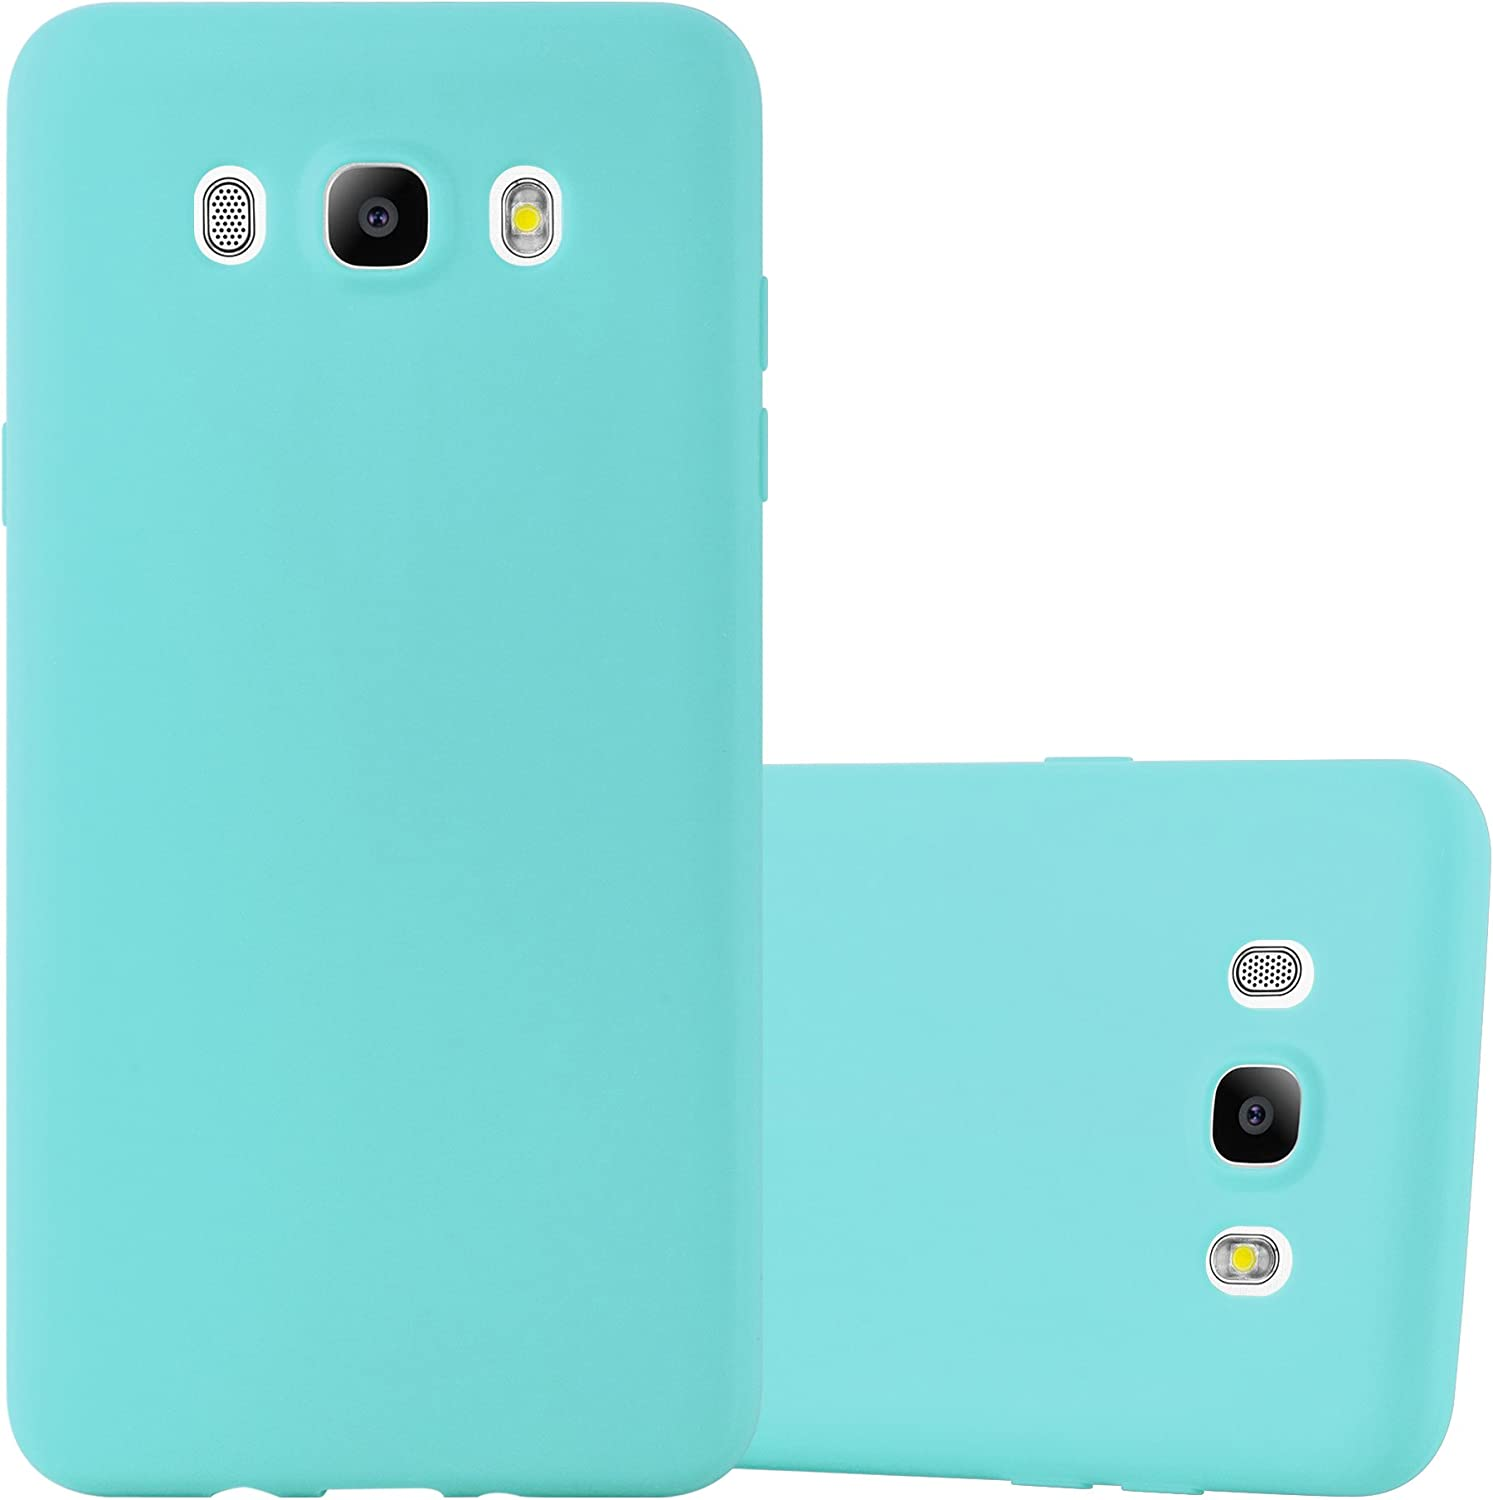 Cadorabo Case Compatible with Samsung Galaxy J5 2016 in Candy Blue - Shockproof and Scratch Resistant TPU Silicone Cover - Ultra Slim Protective Gel Shell Bumper Back Skin